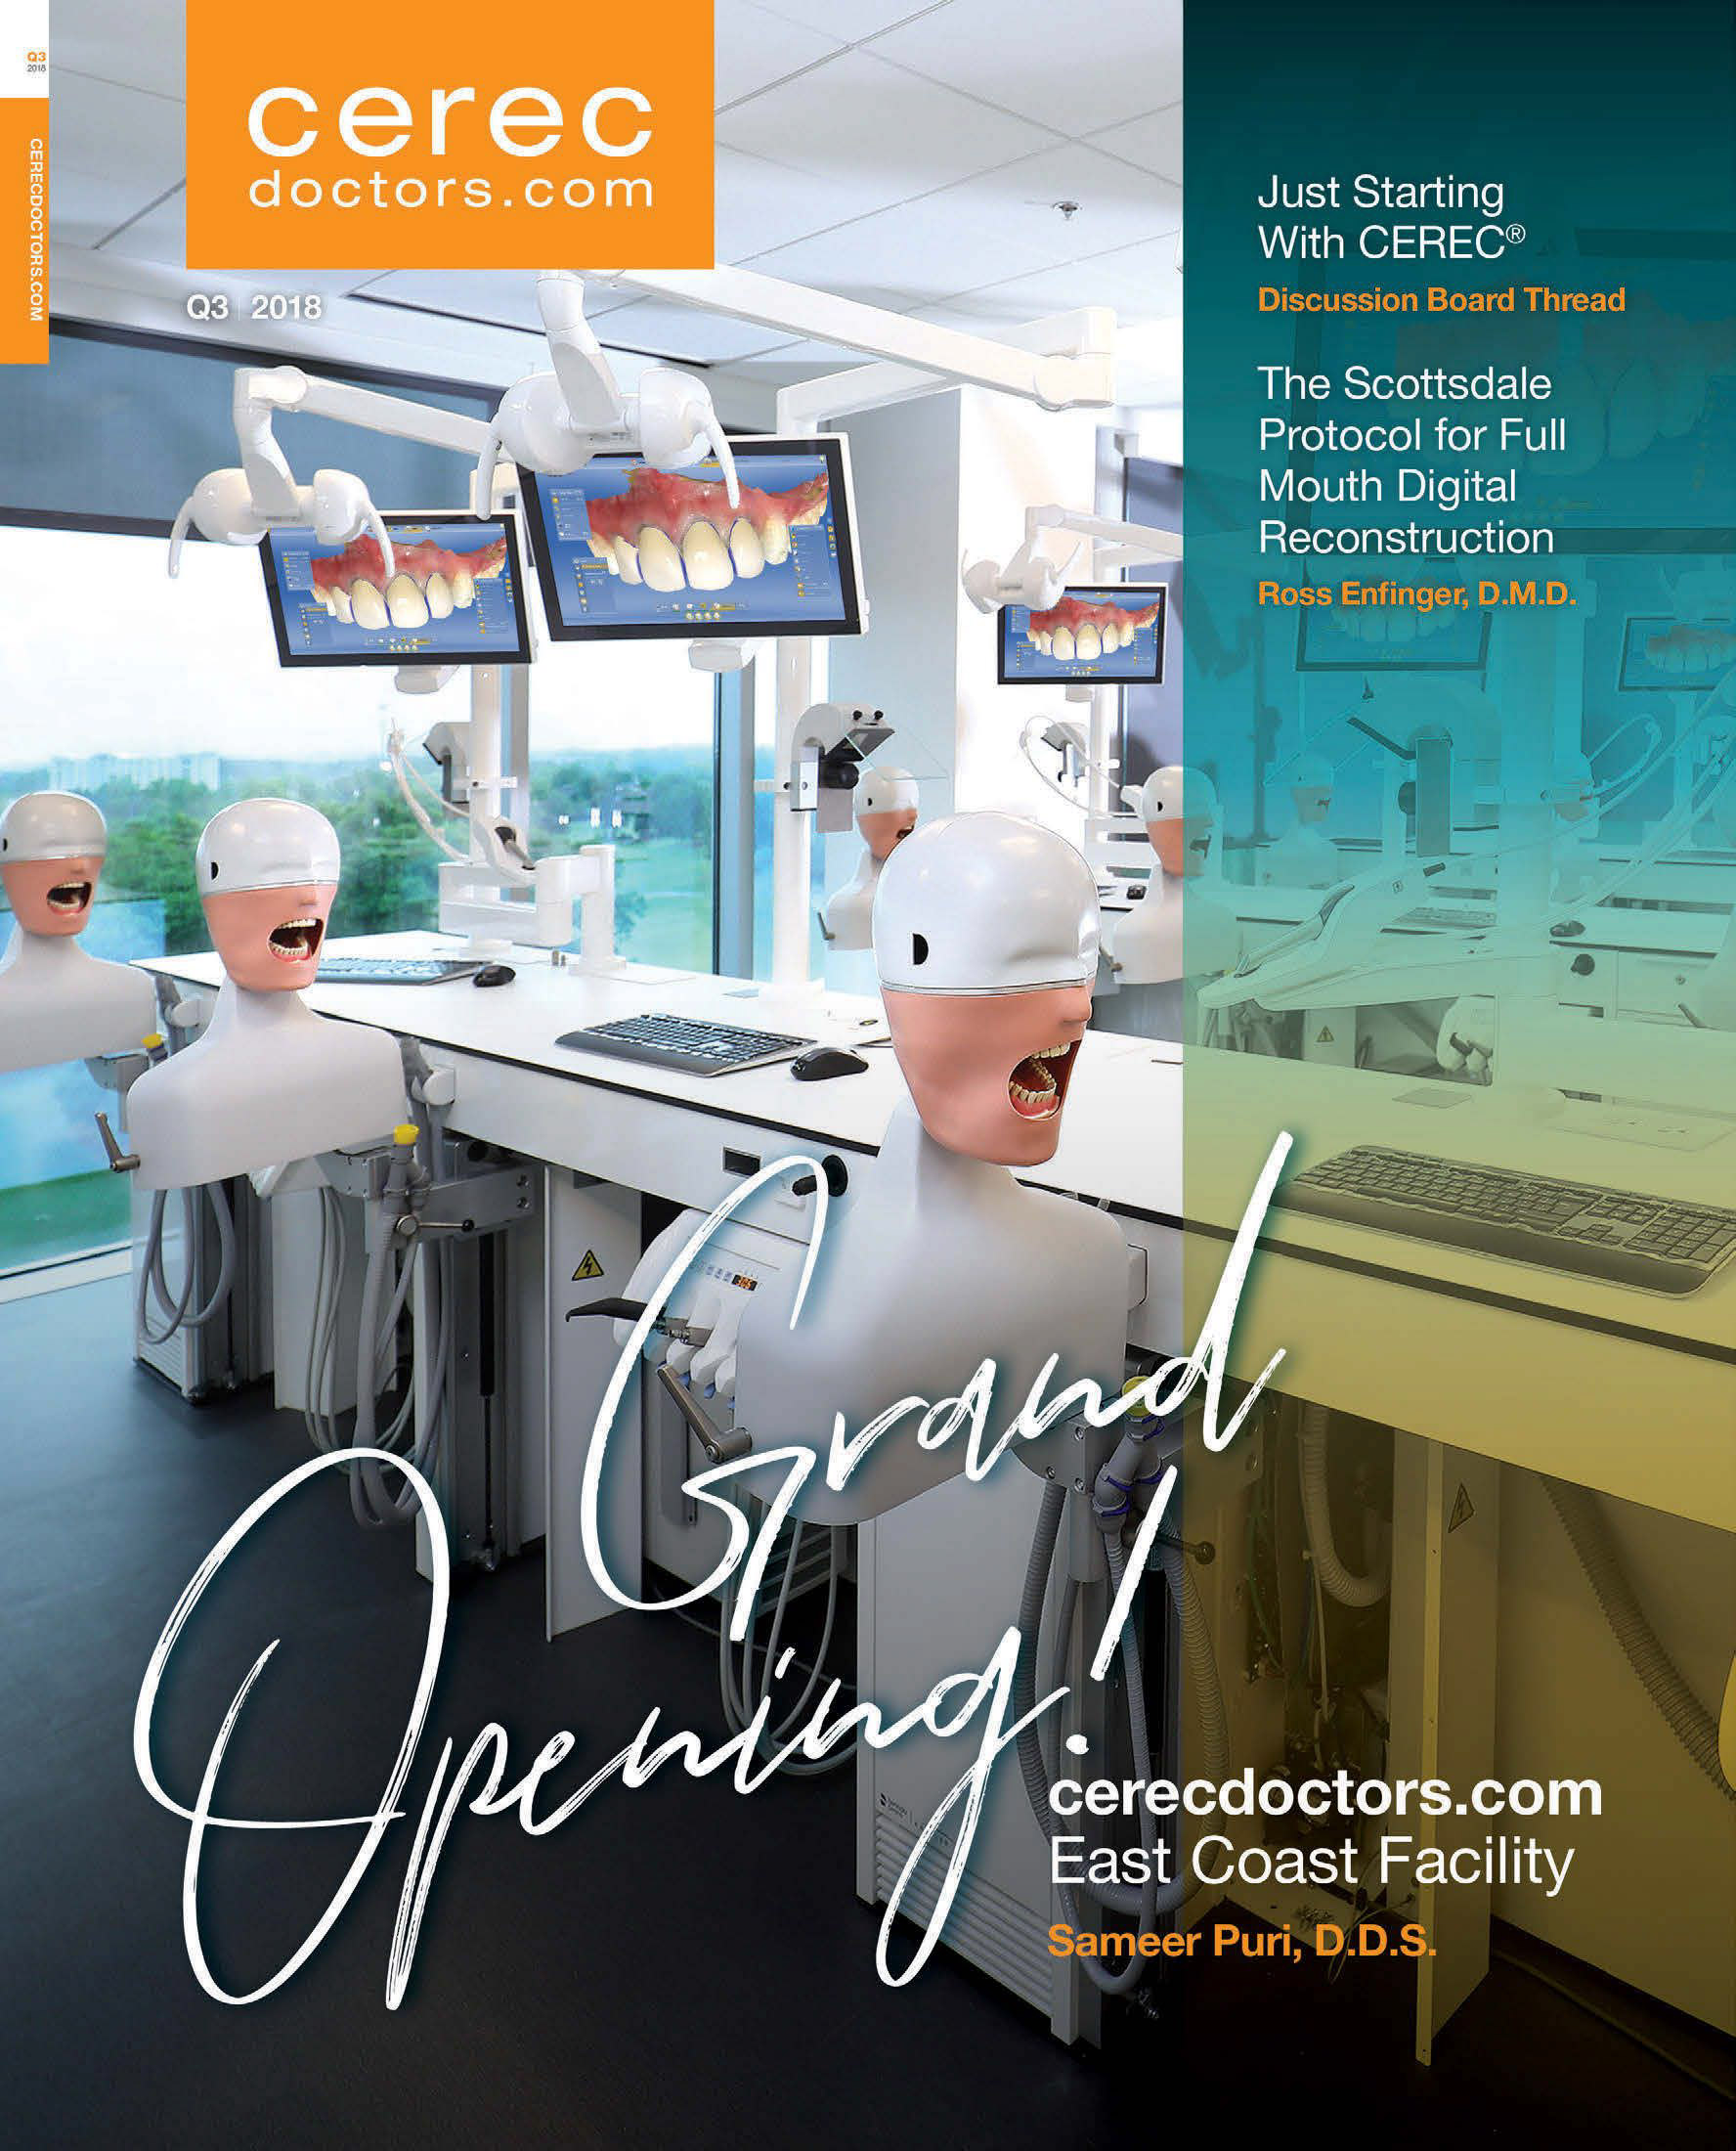 CEREC Magazine - Q3 2018